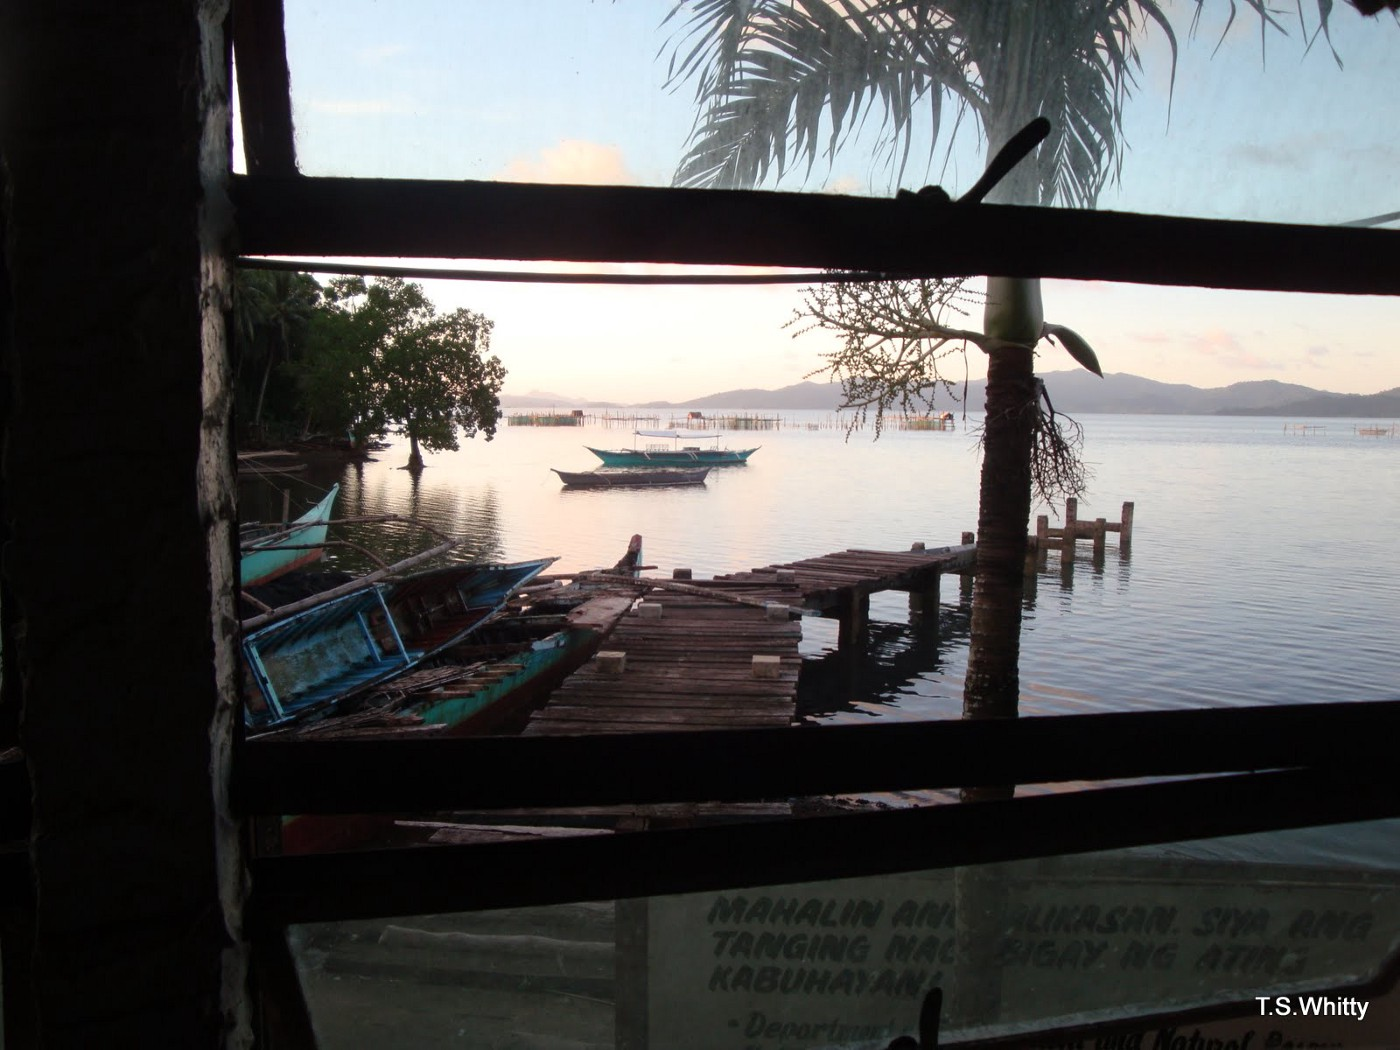 Looking through a window at a ramshackle dock and the sea with small outrigger fishing boats and big bamboo fishing structures scattered around